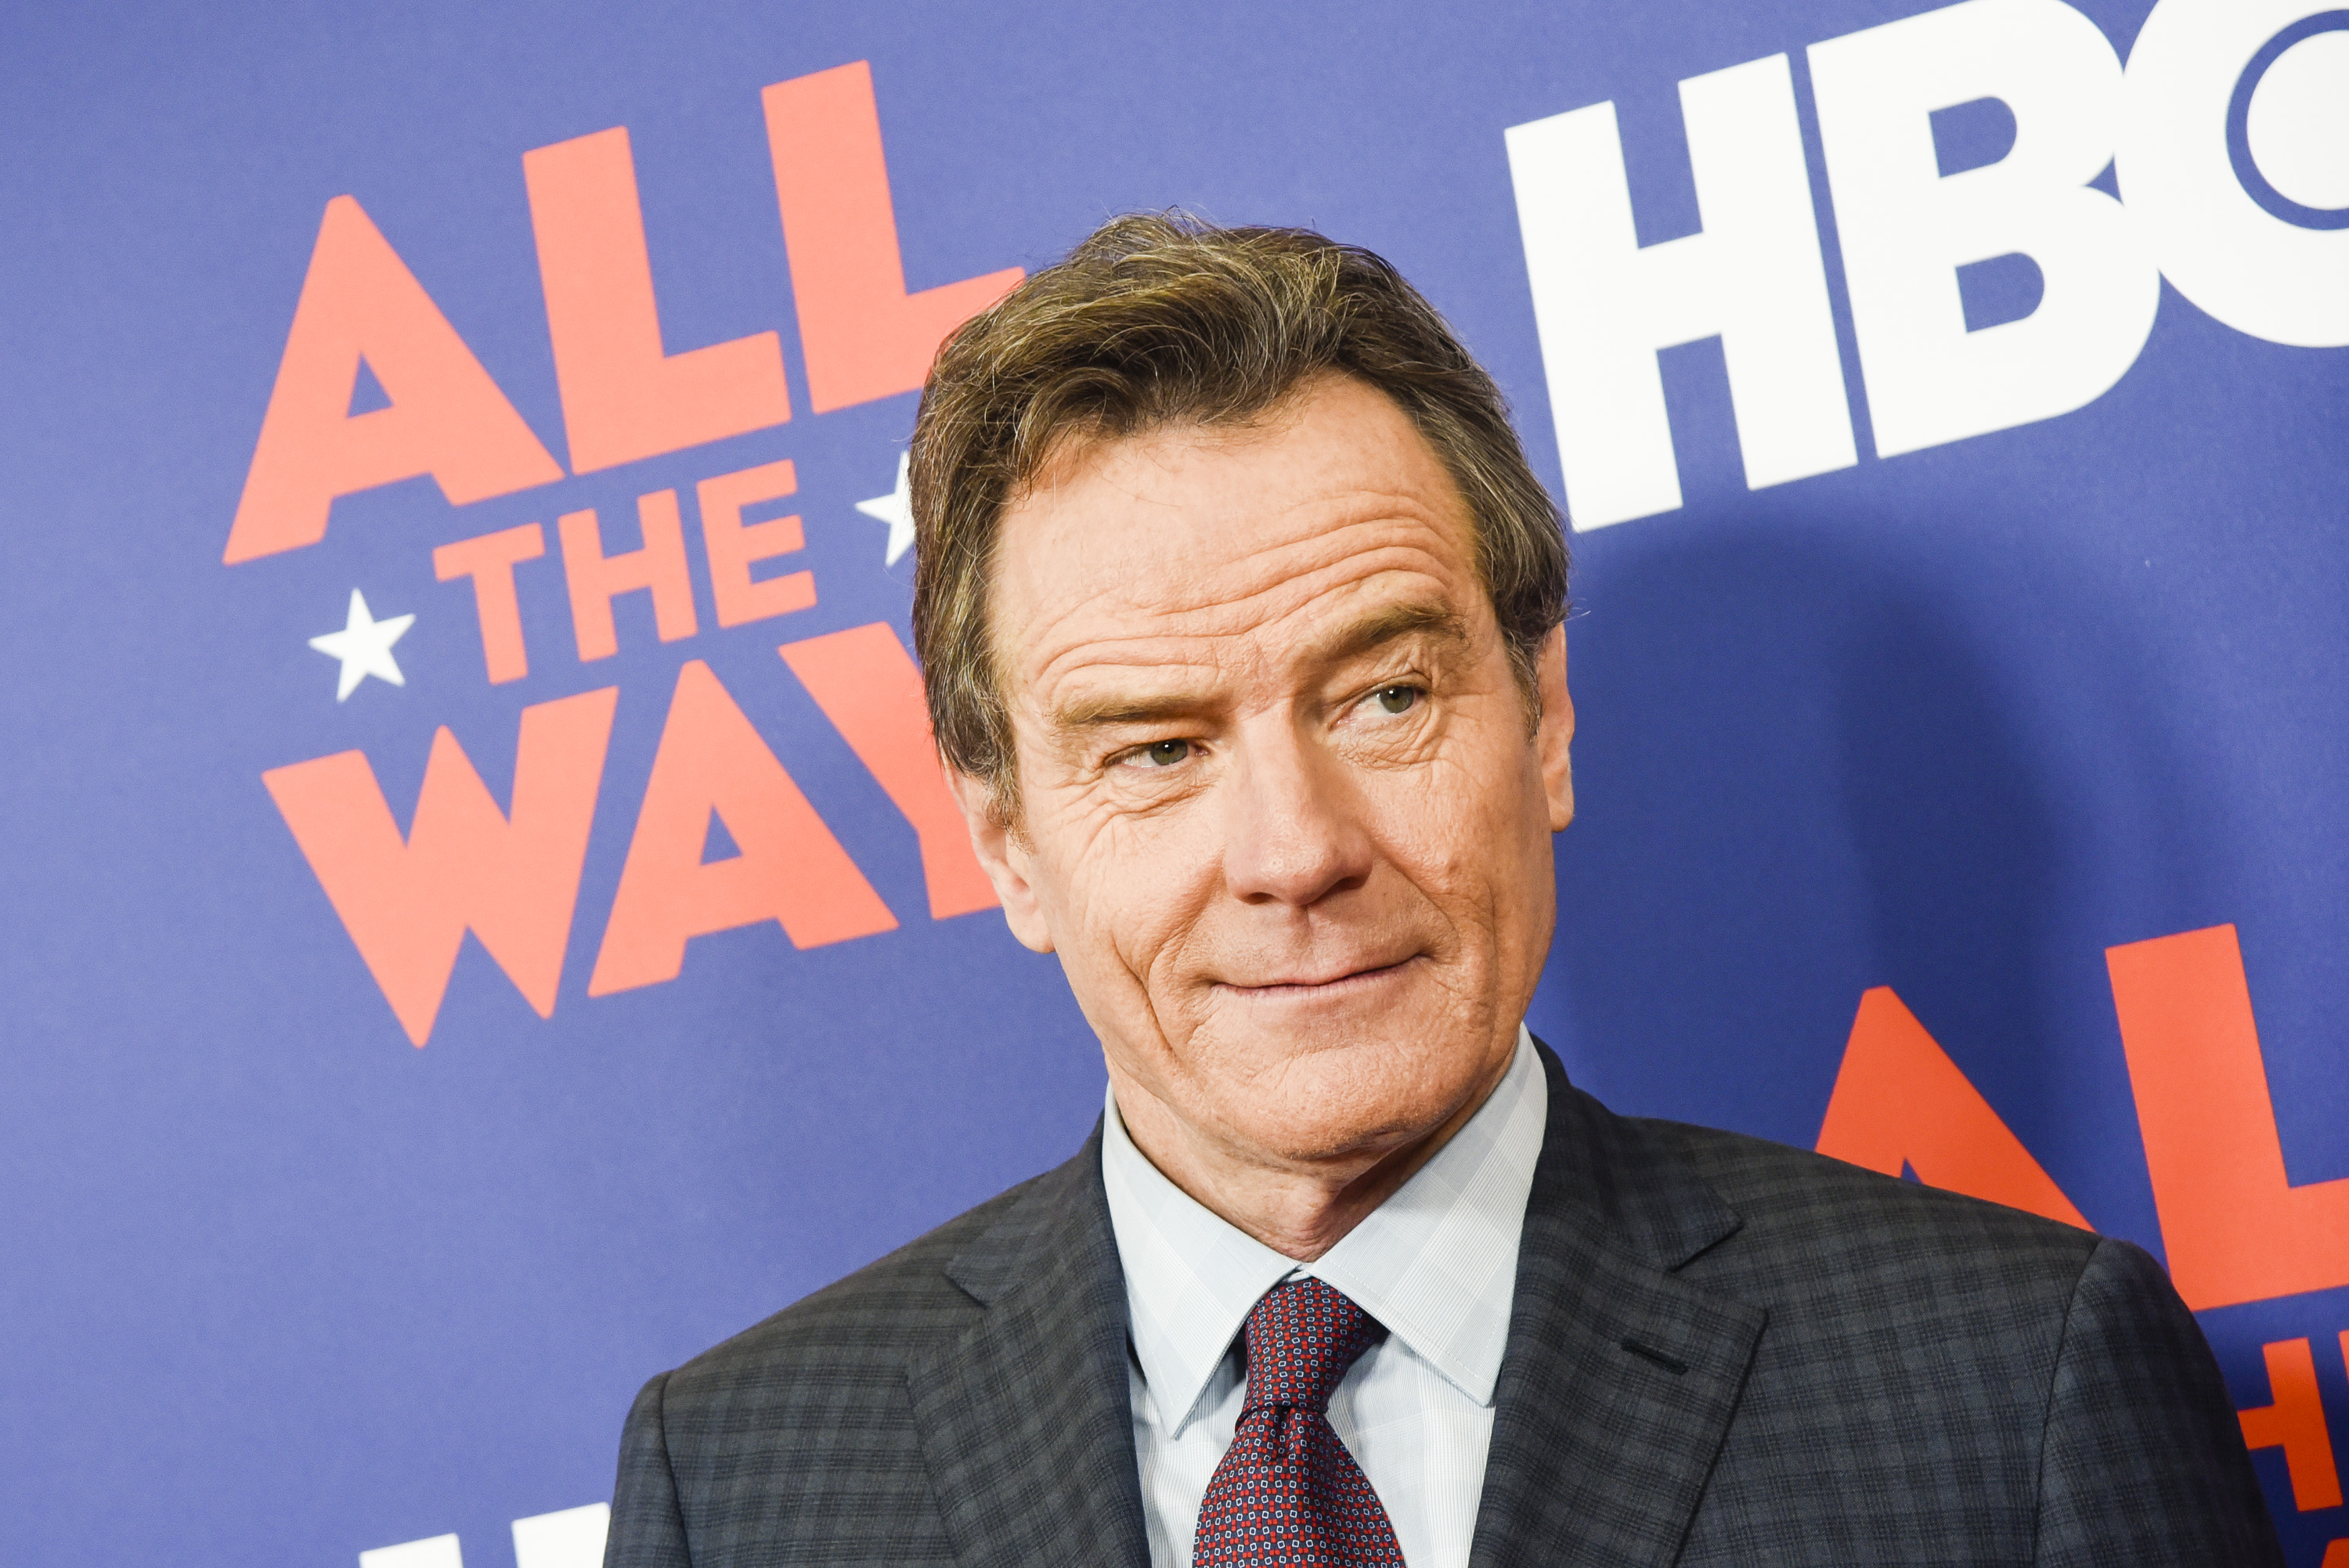 Actor Bryan Cranston poses for photographers during HBO's  All The Way  Washington, DC Screening at The National Archives in Washington, D.C., on May 16, 2016.